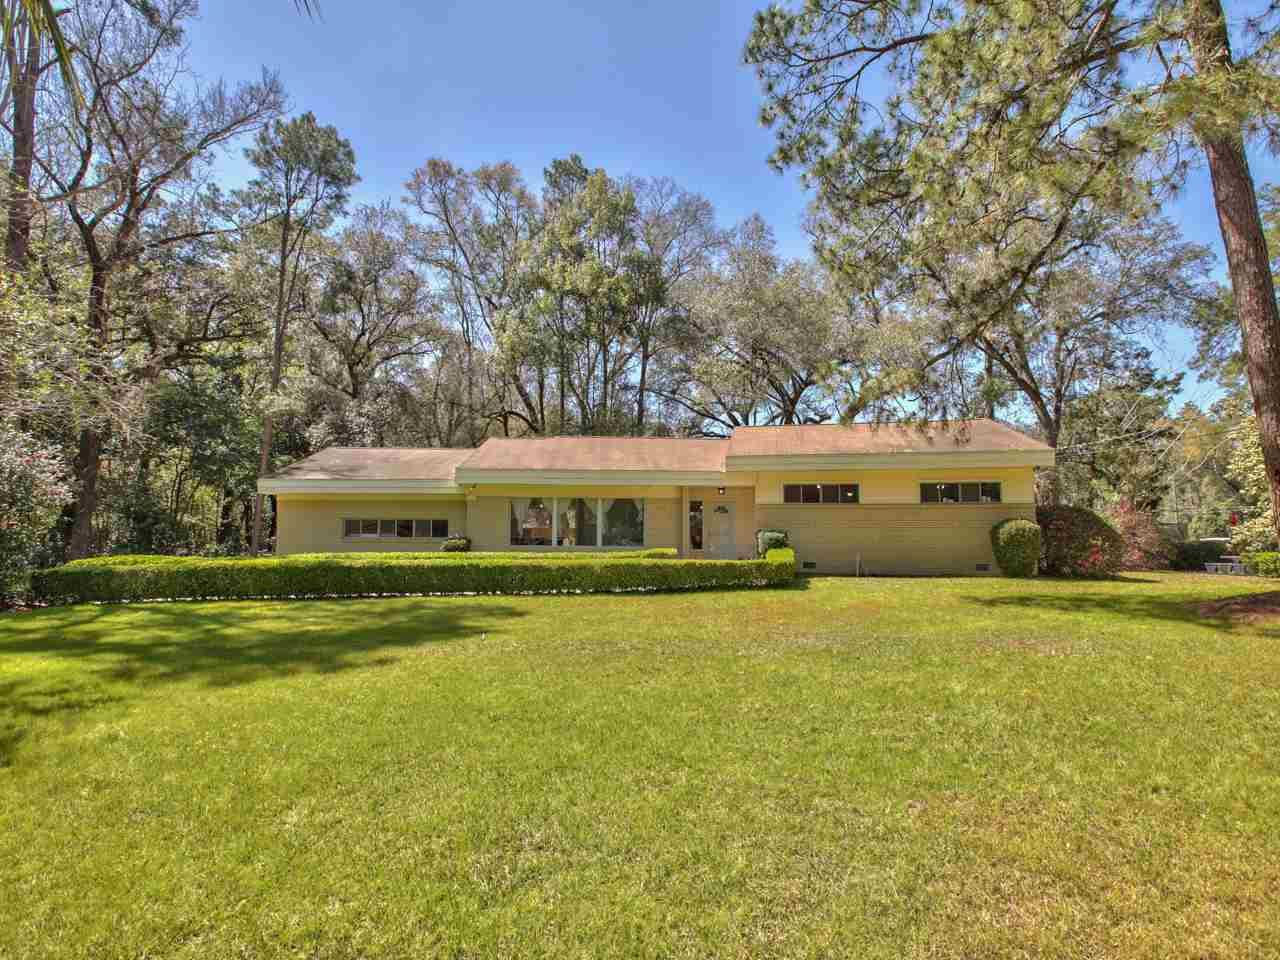 2506 Sir Williams Street, Tallahassee, FL 32310 - MLS#: 329640